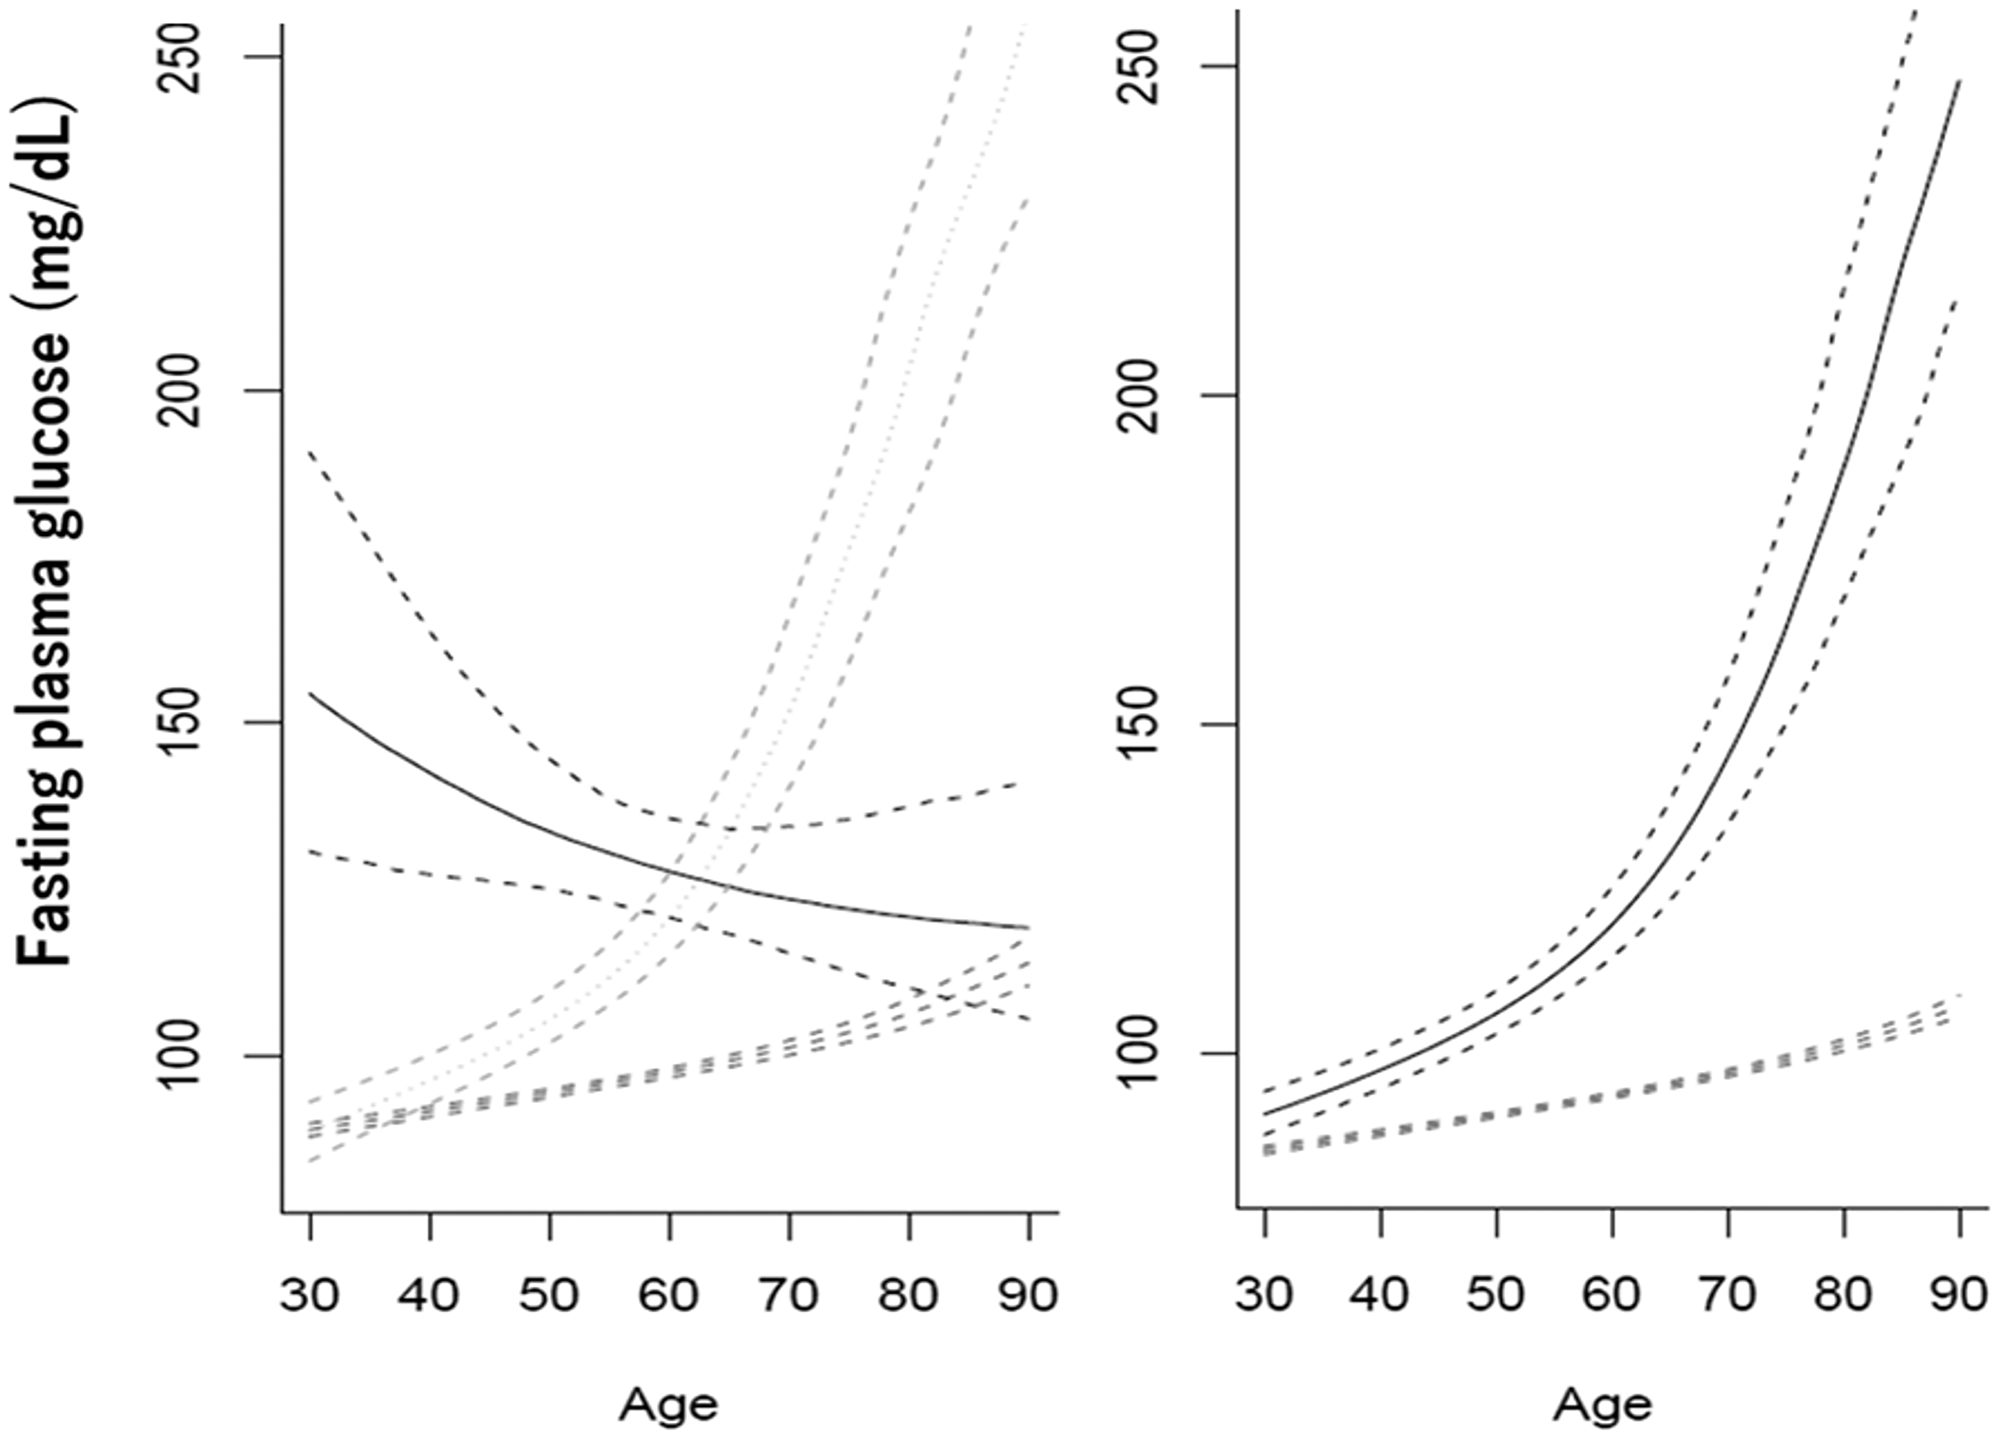 Types of trajectories of changes in fasting glucose with increasing age in men (left) and women (right).